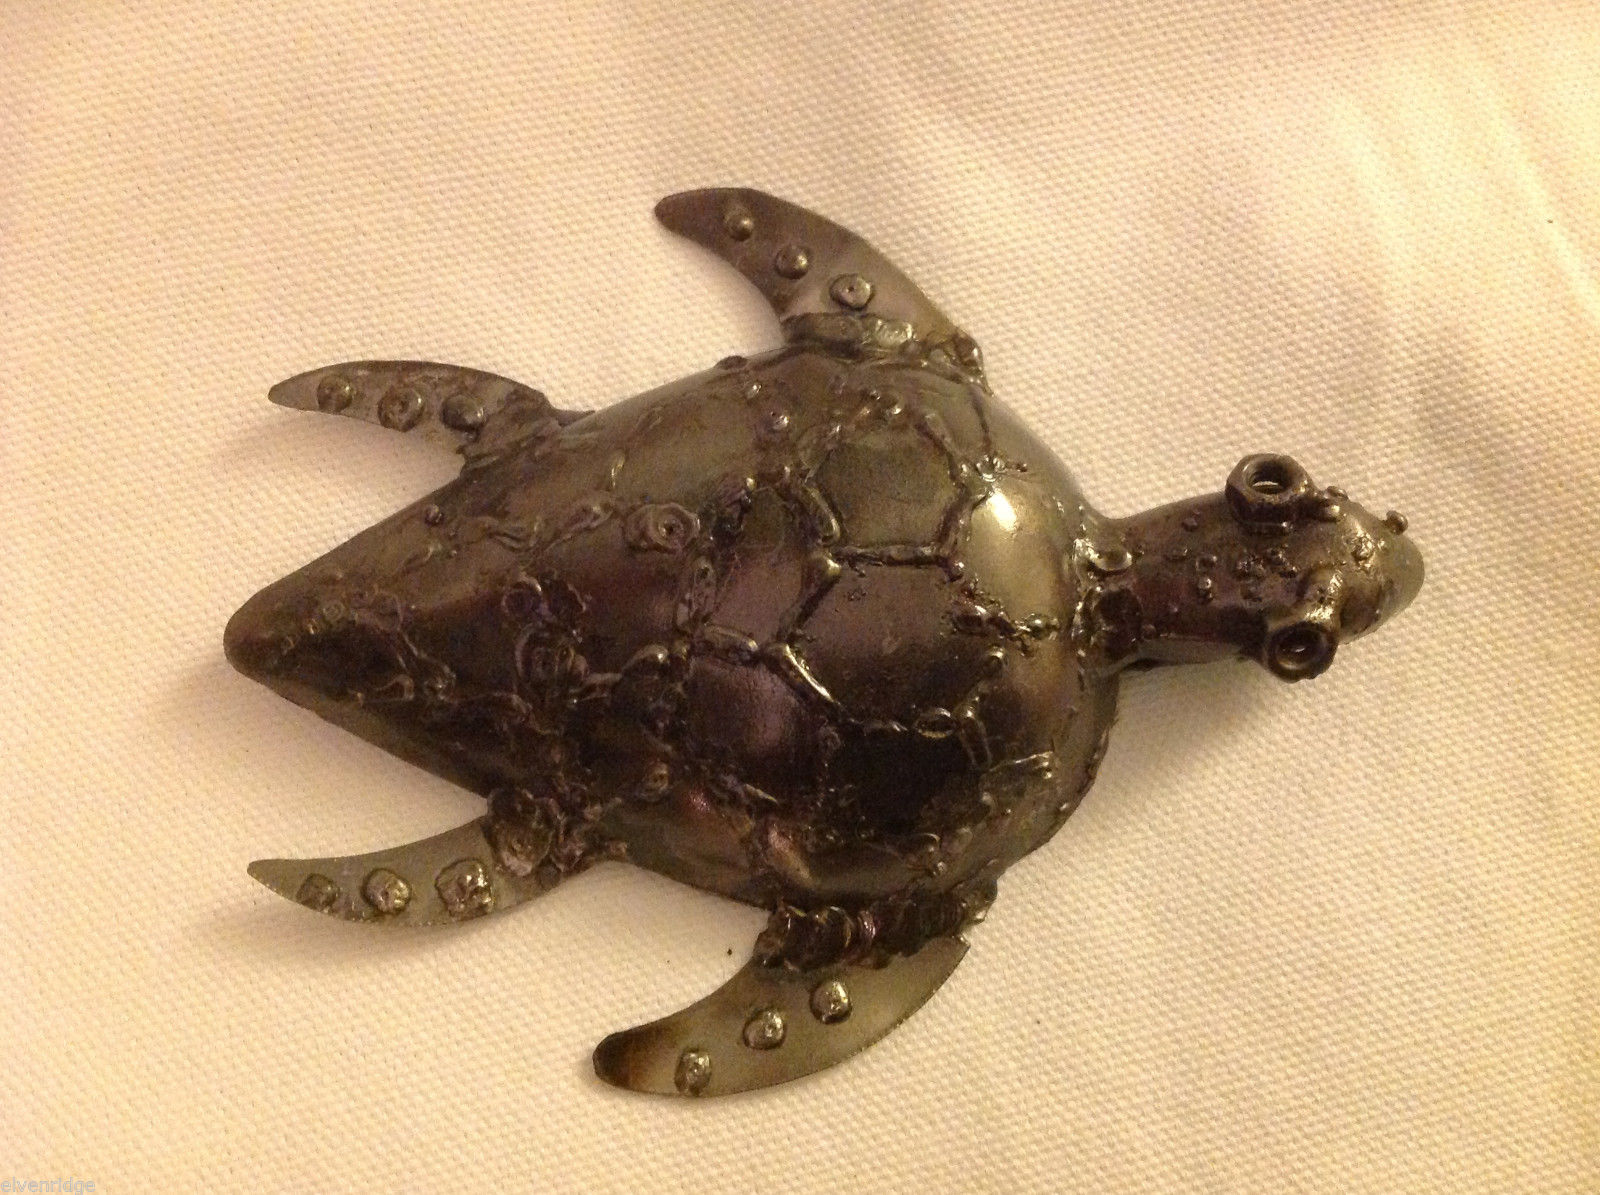 Metal scrap sculpture of parts and artifacts sea turtle fair trade global